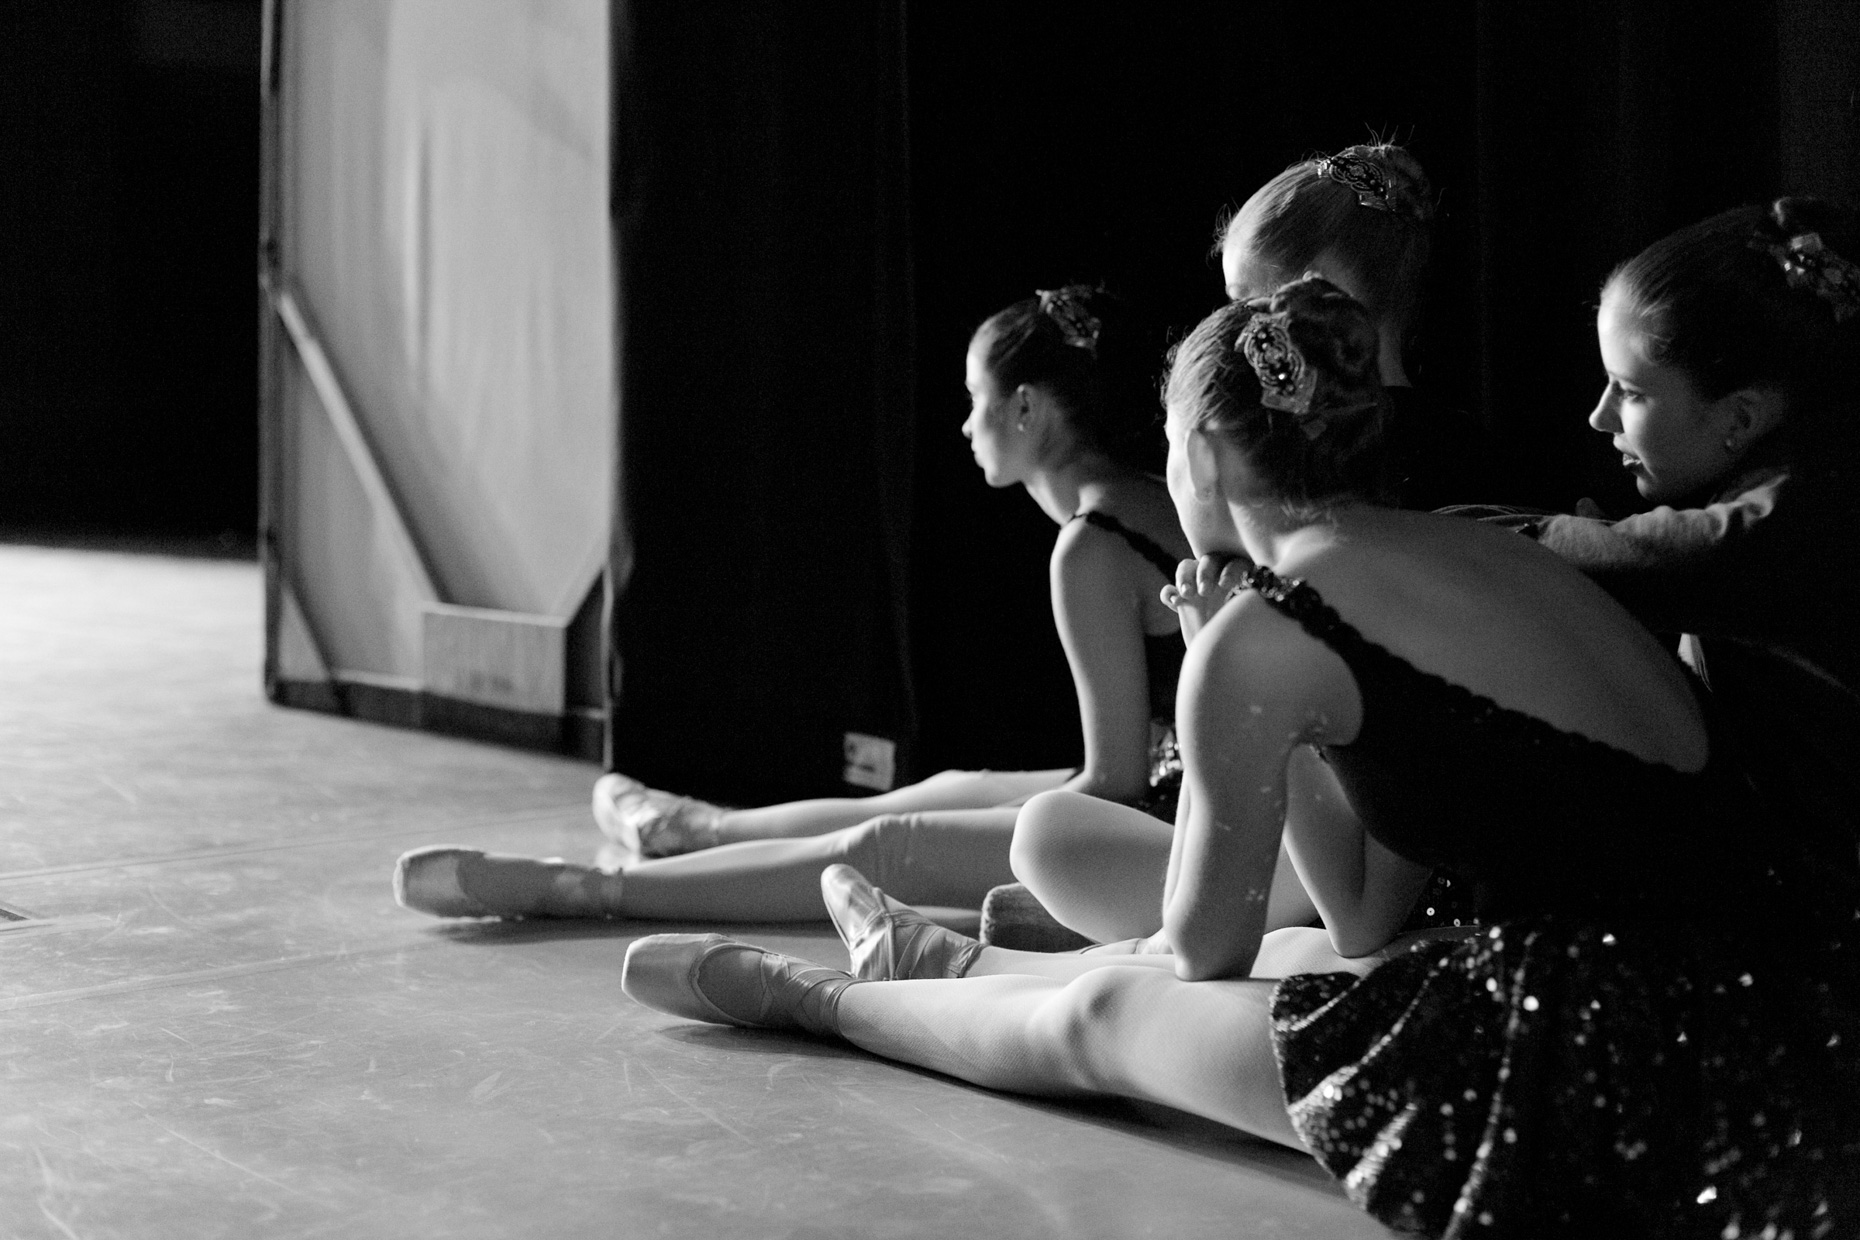 Backstage with Oregon Ballet Theatre dancers